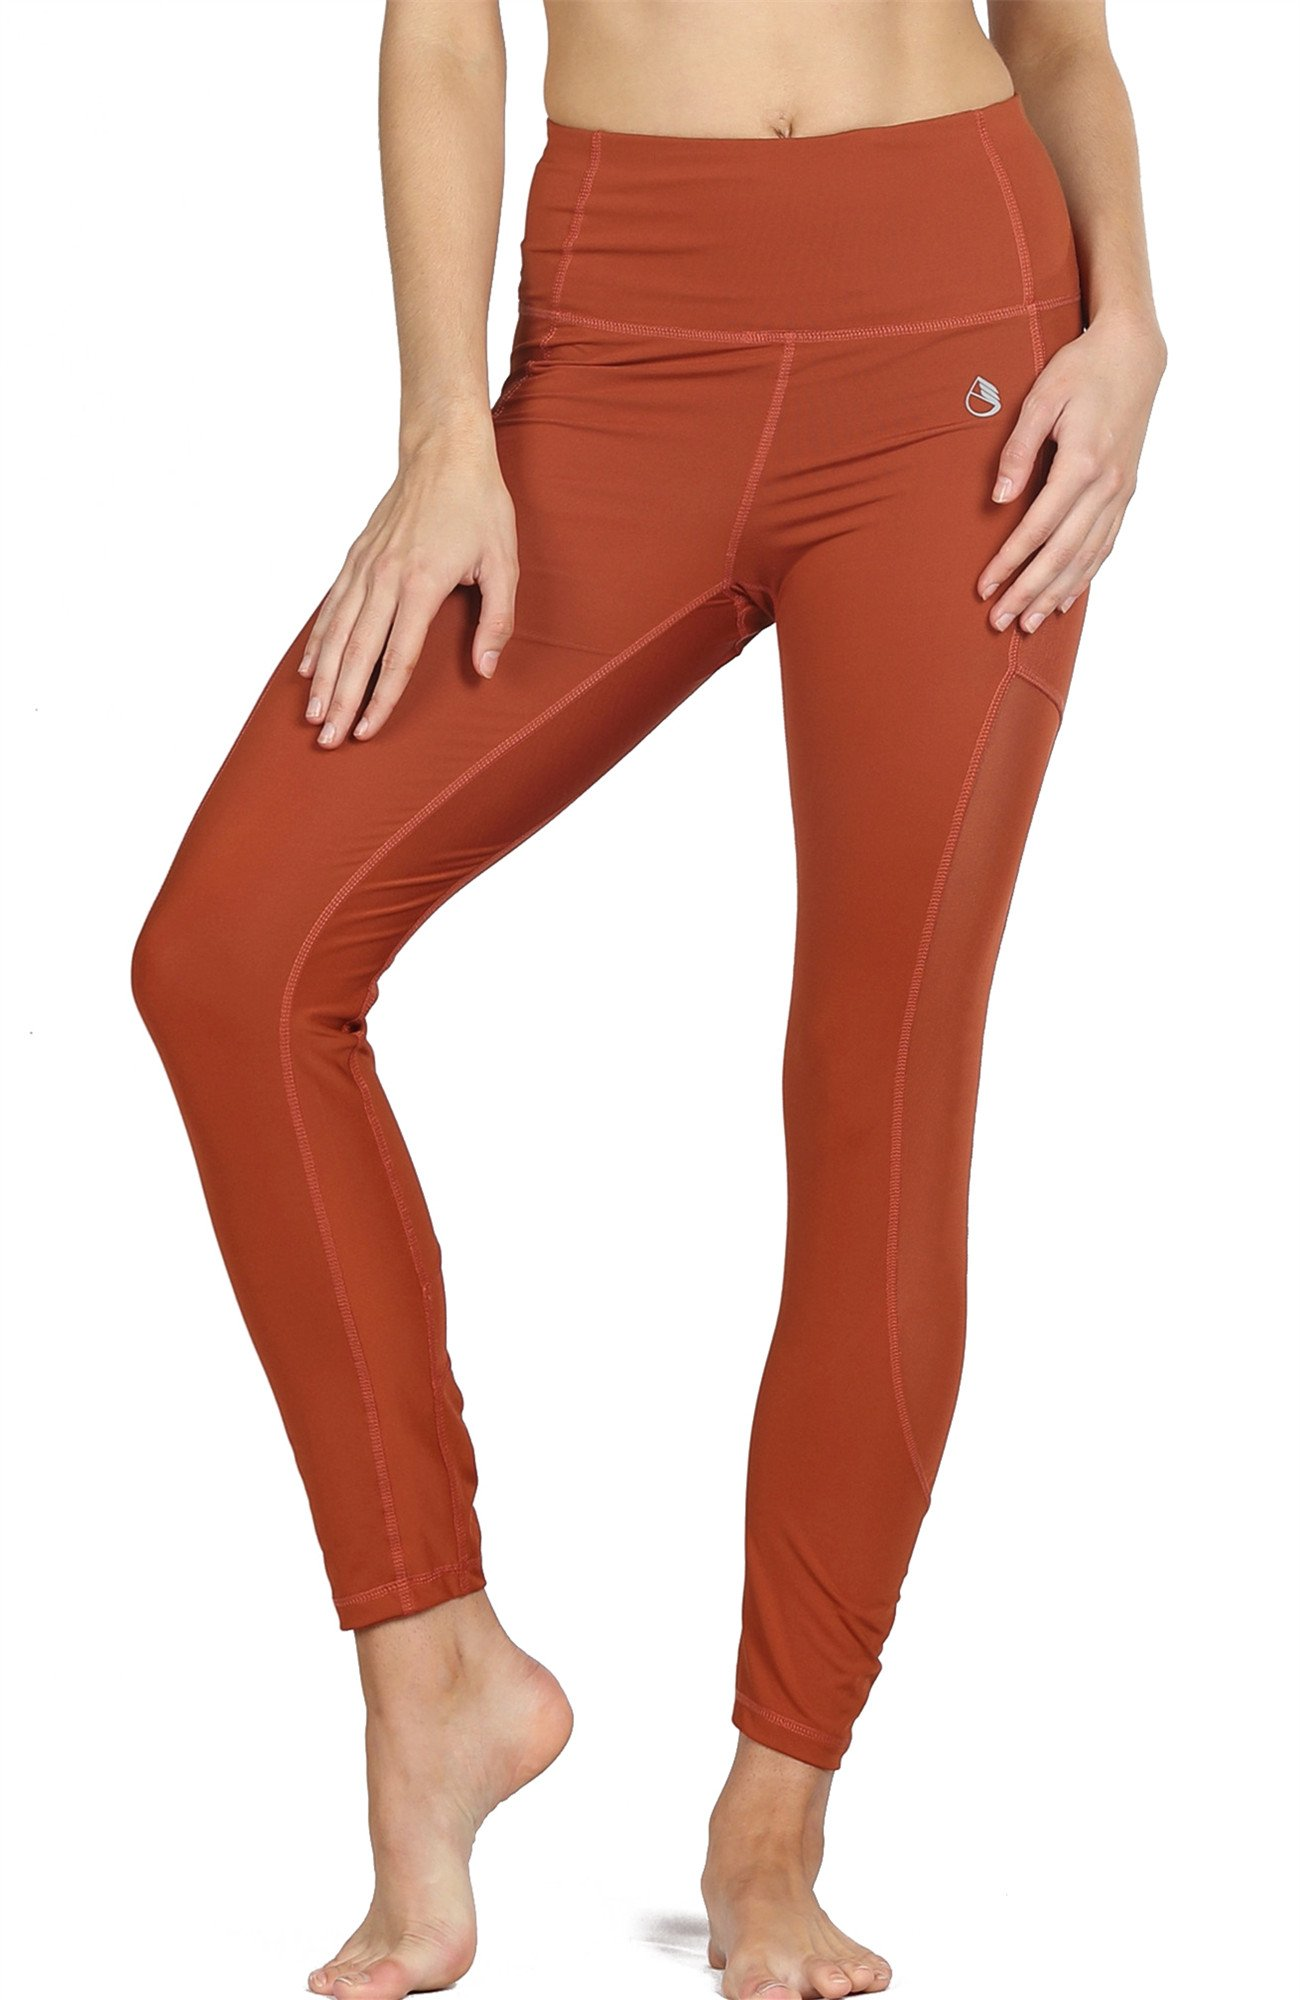 icyZone Tummy Control Slimming Shaping High Waist Yoga Tights Leggings with Mesh (L, Persimmon)